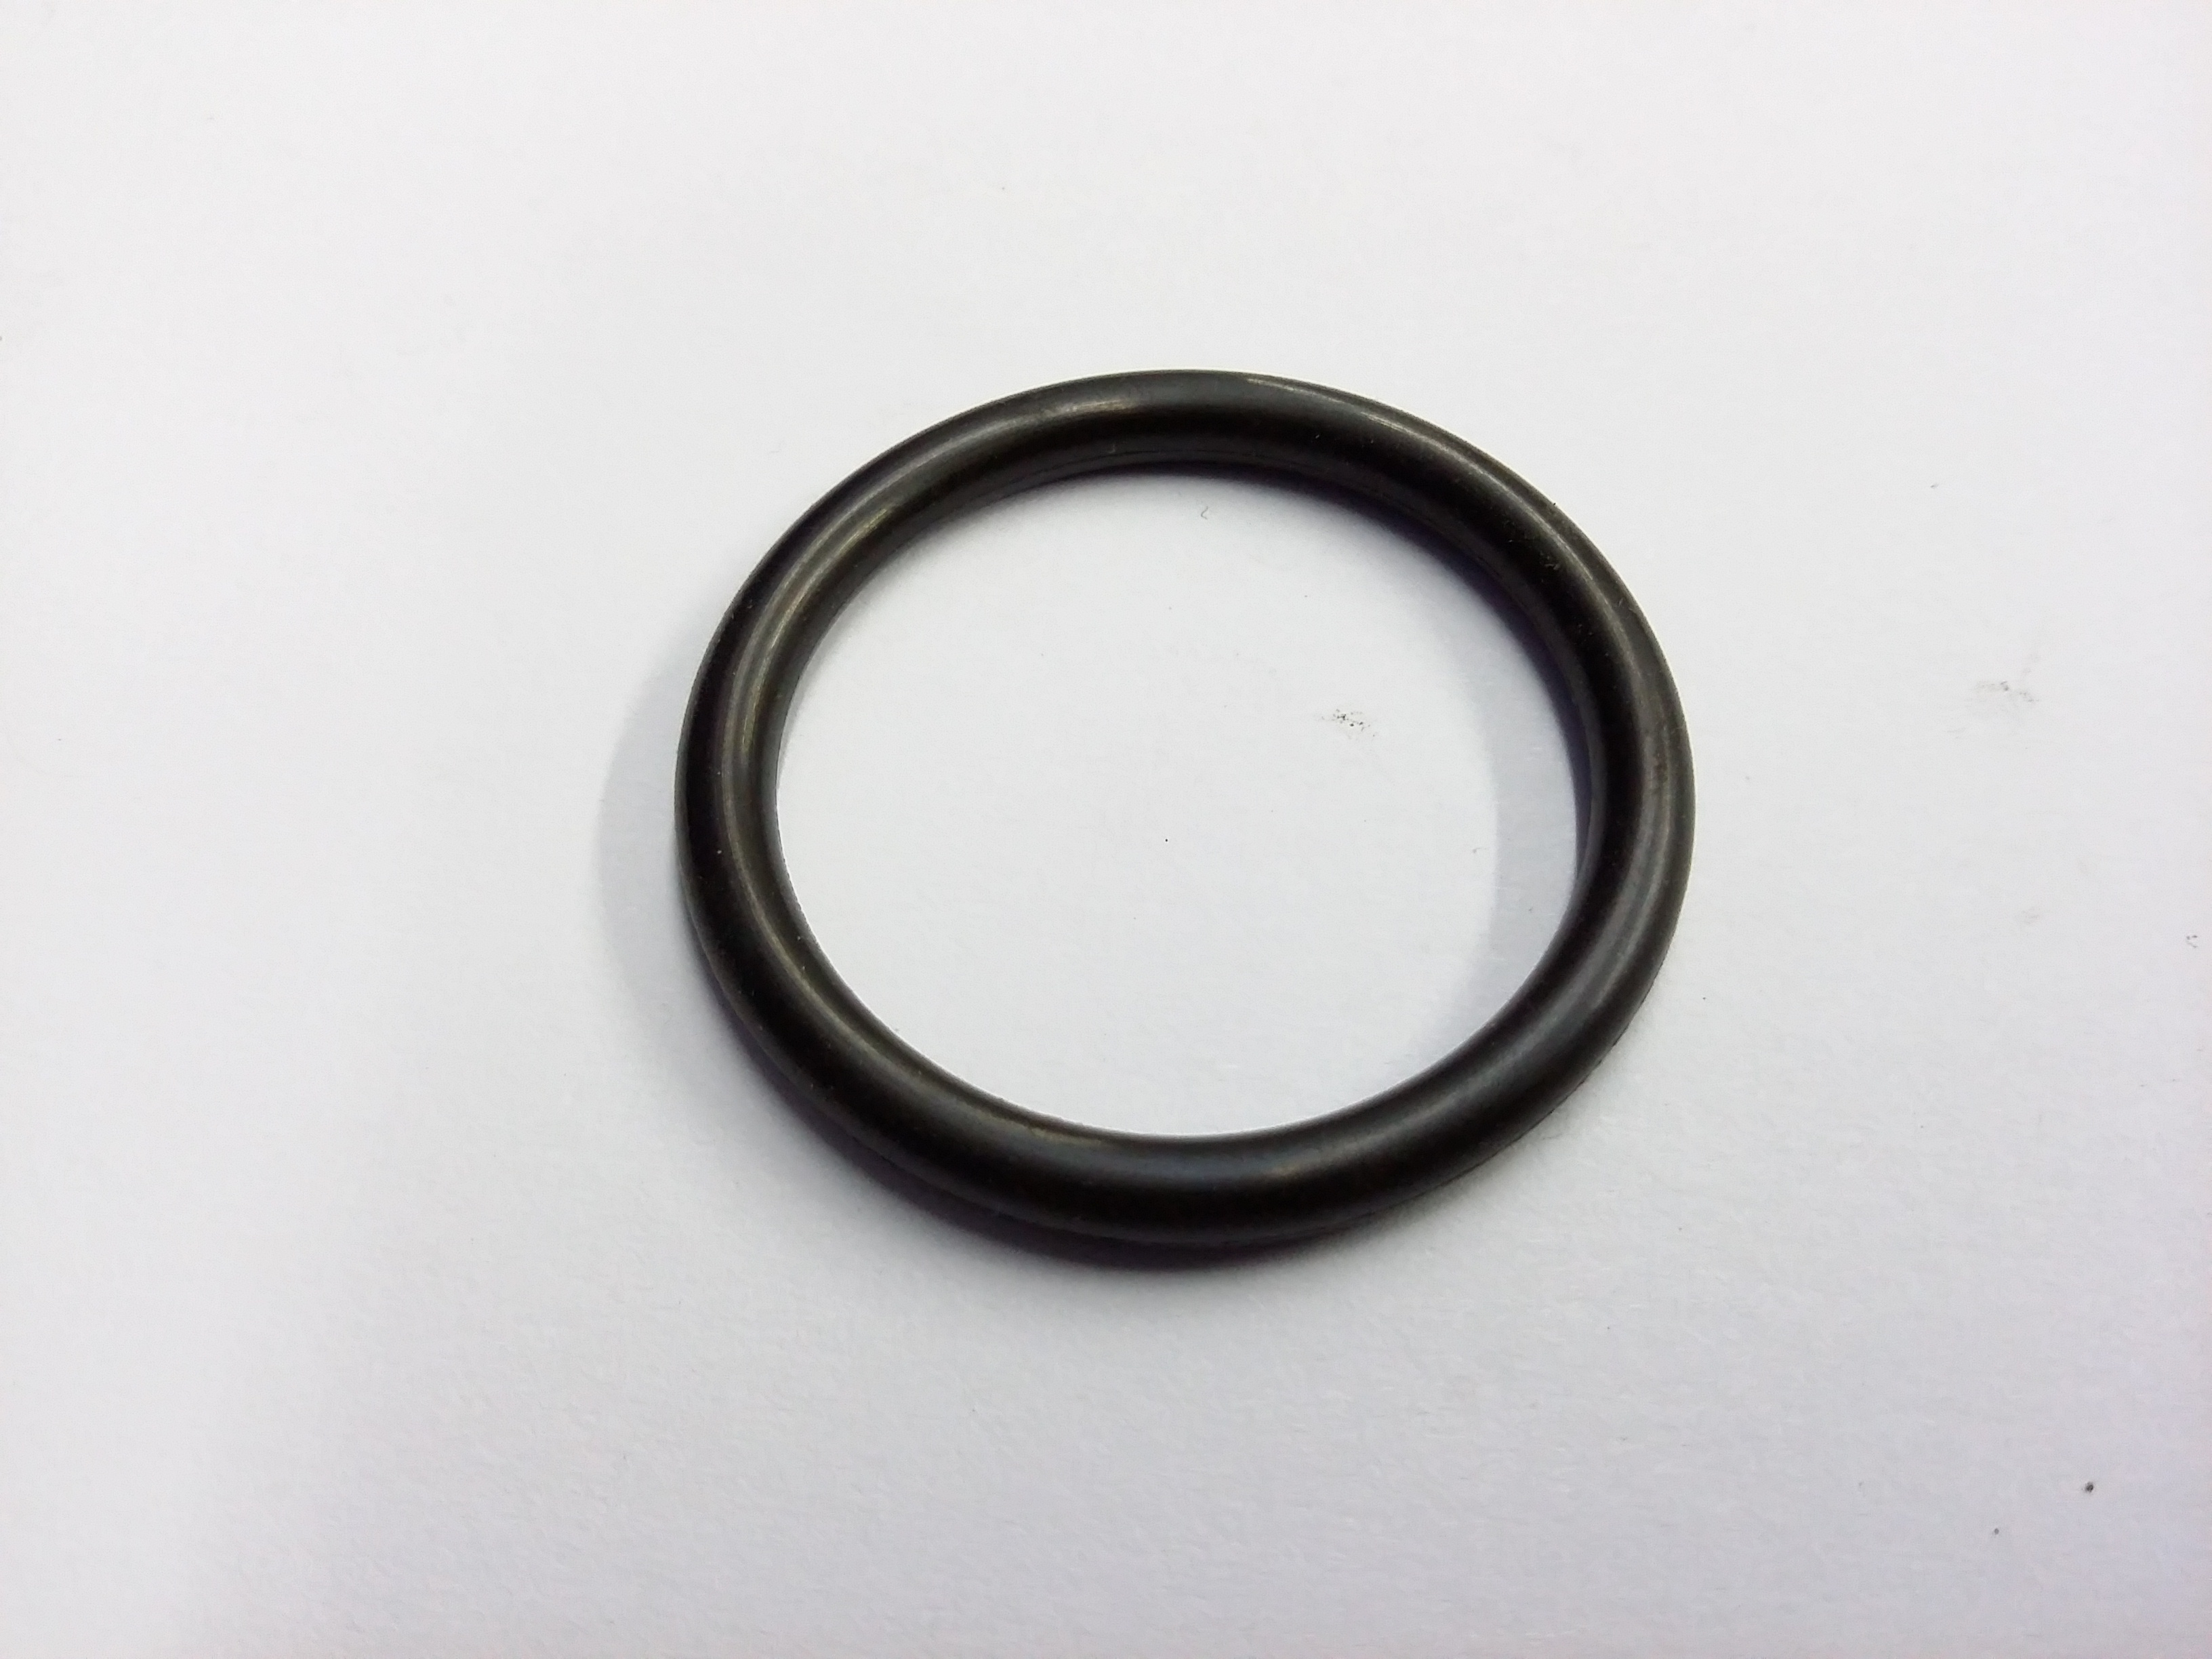 Audi A6 Engine Coolant Pipe O Ring 24 X 3mm Audi